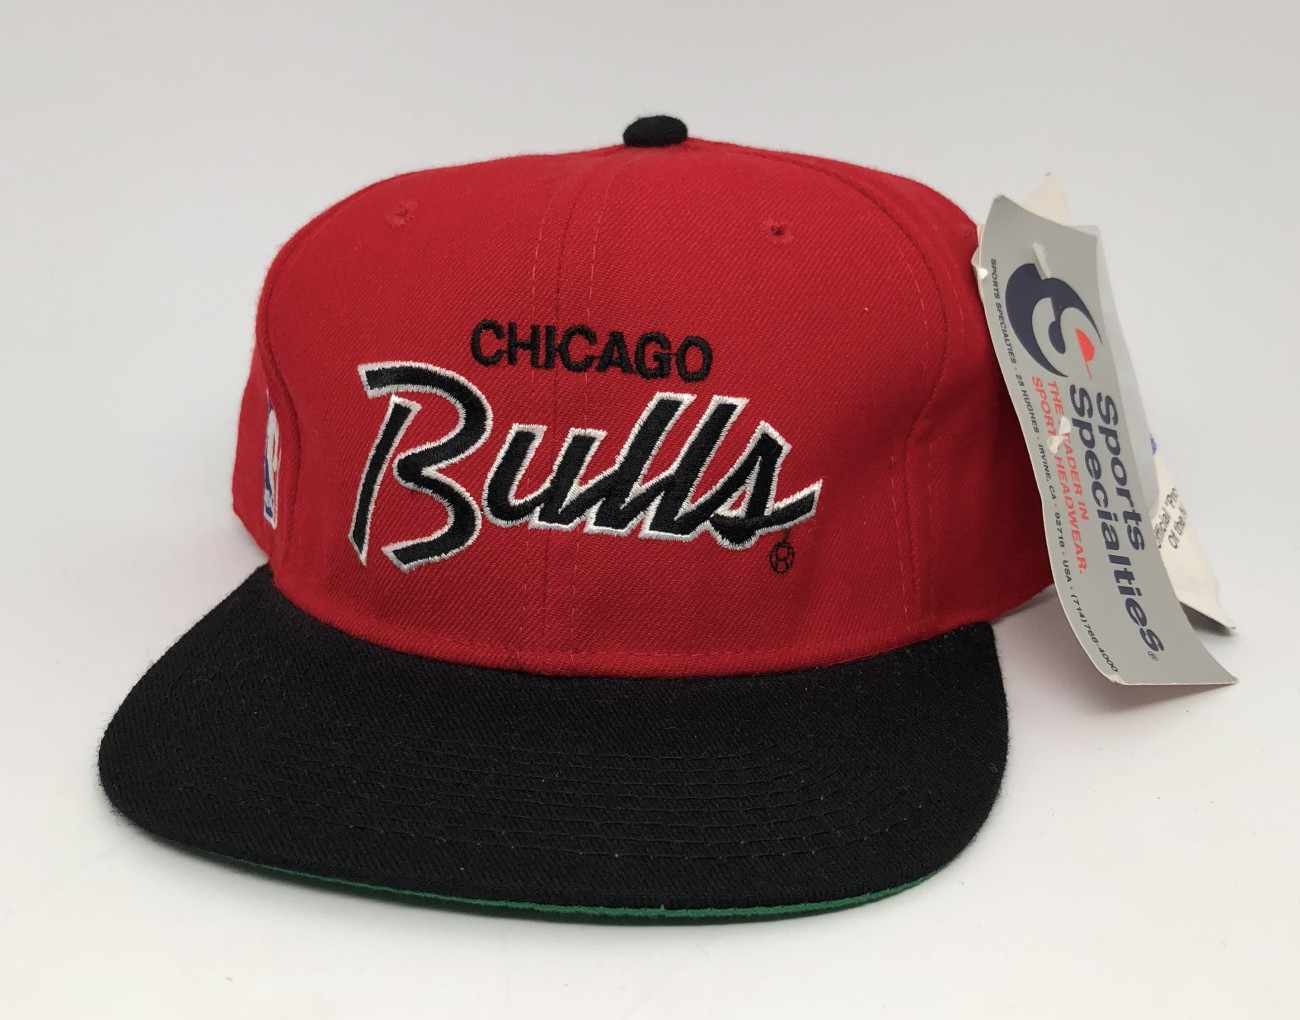 90's Chicago Bulls Sports Specialties script NBA fitted hat size 7 1/2